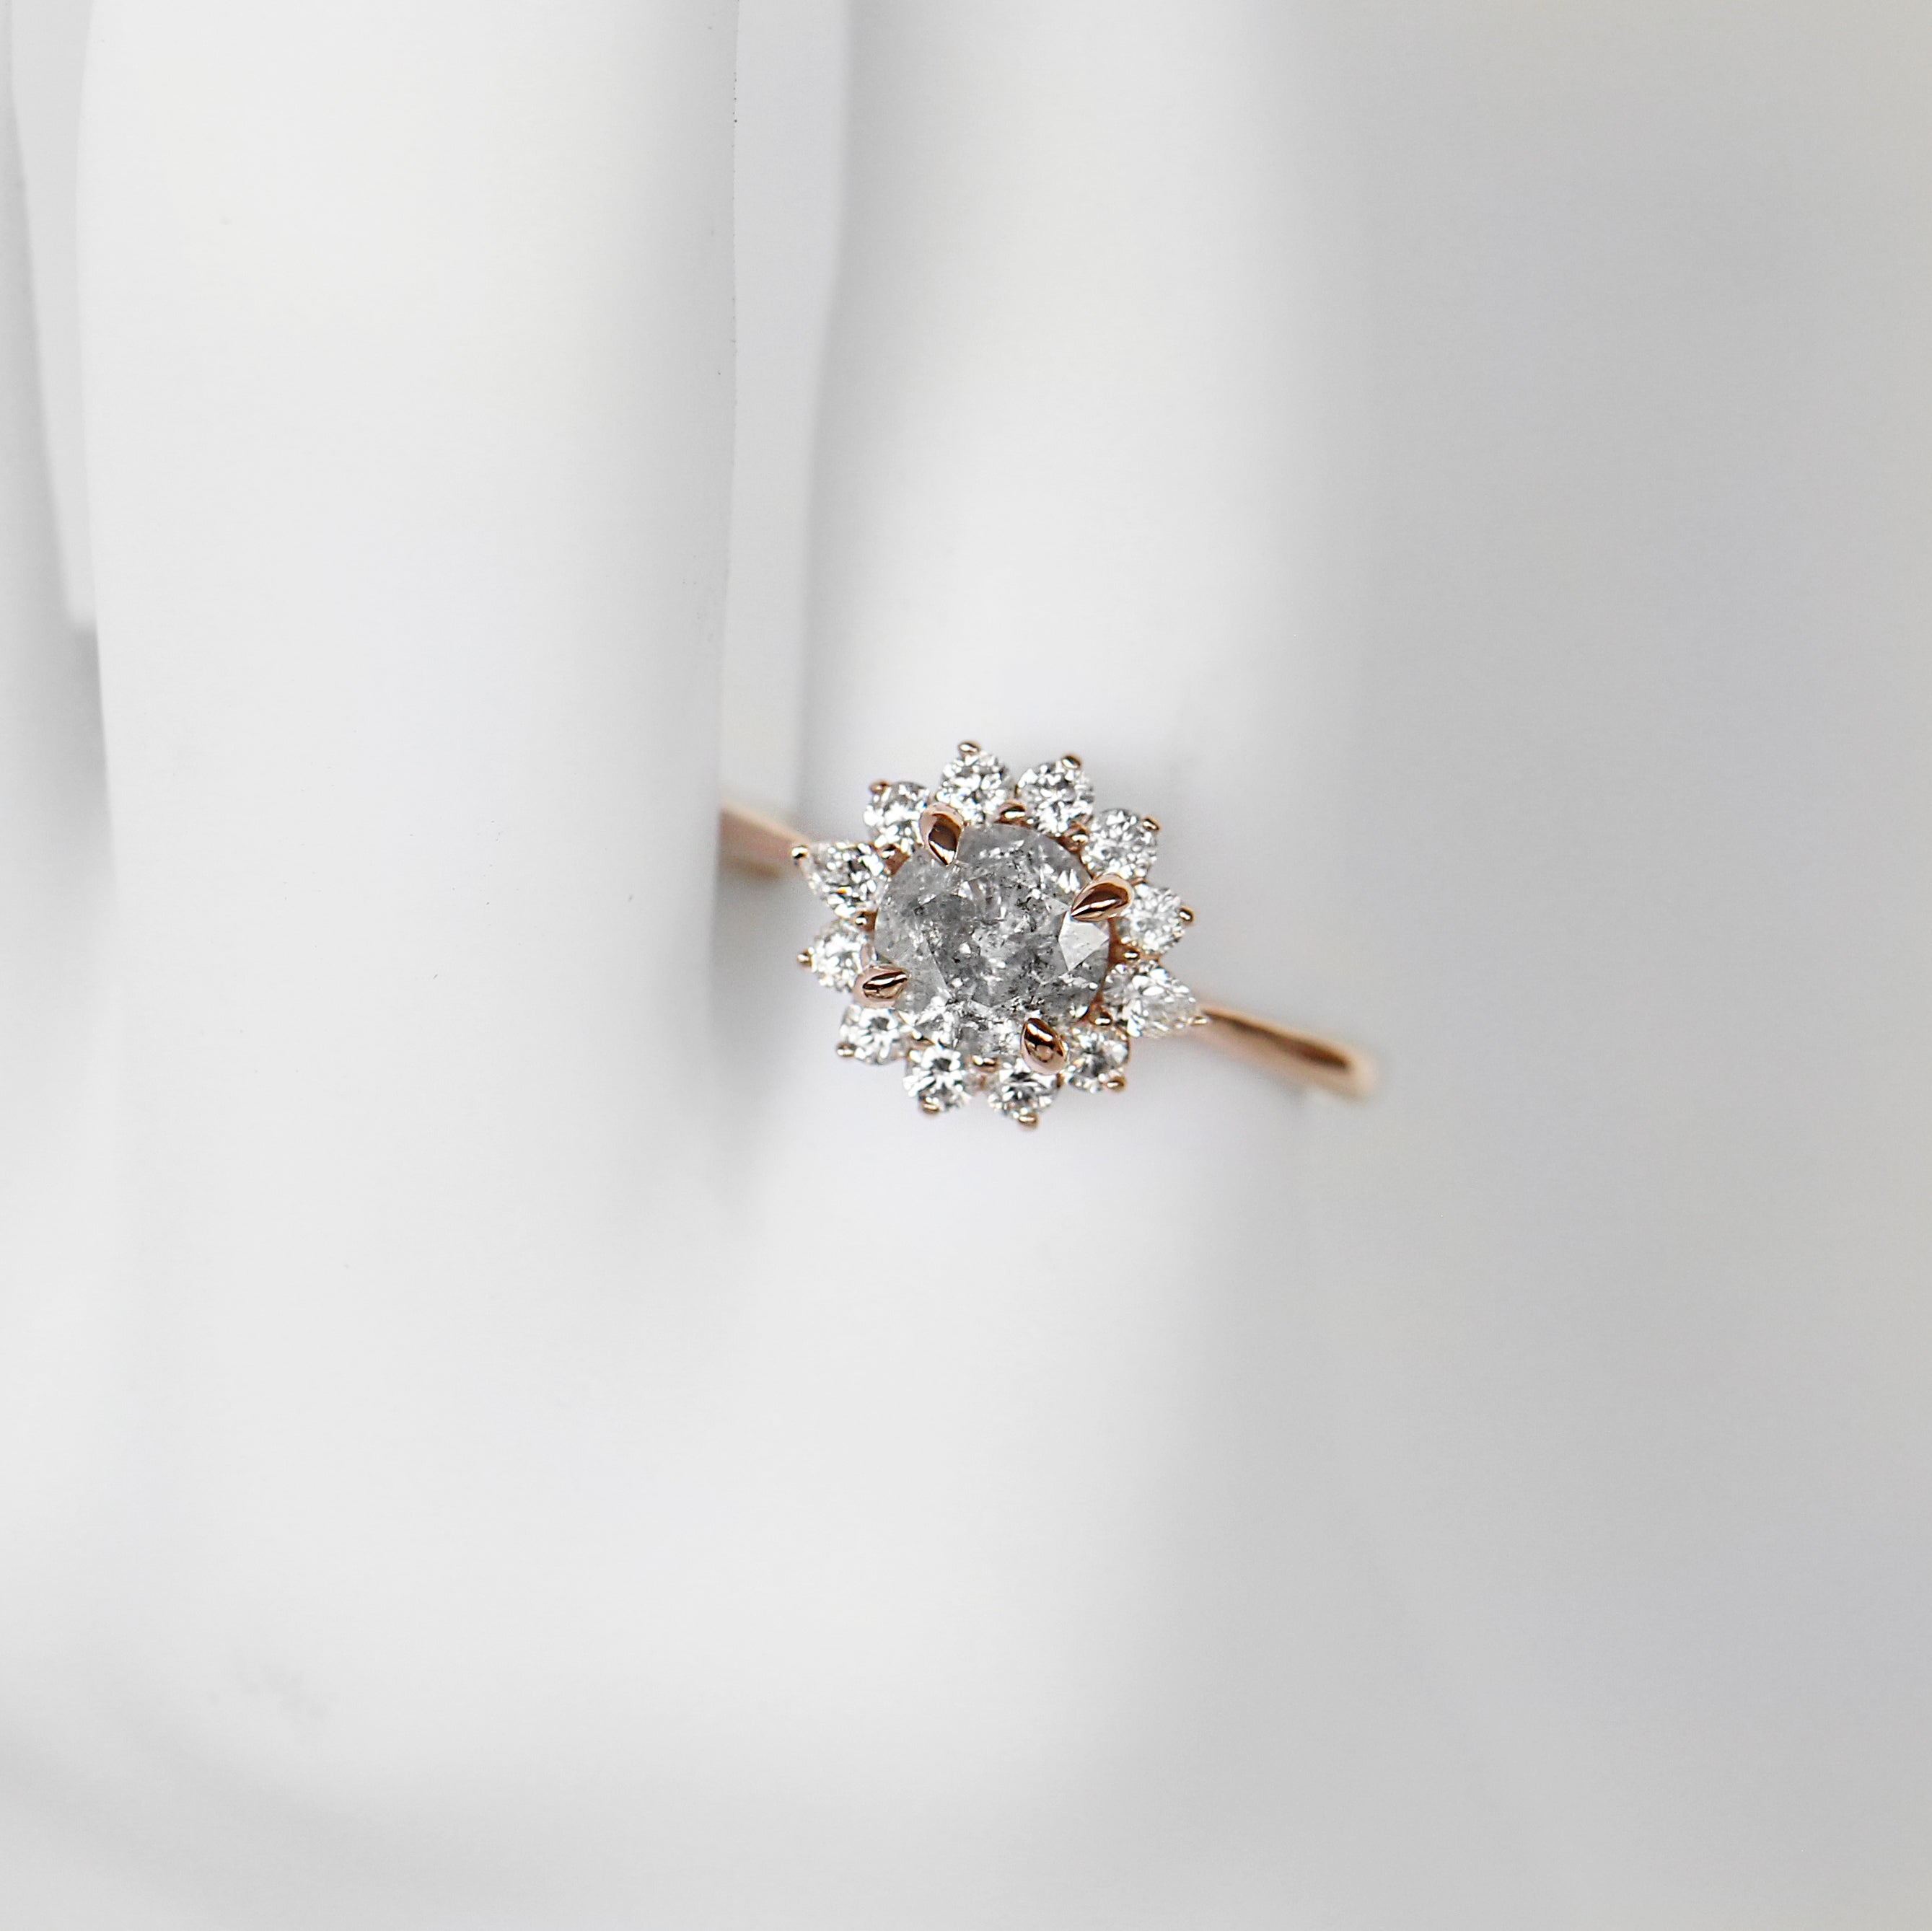 Dahlia Ring with .96 Carat Round Celestial Diamond in 10k Rose Gold - Ready to Size and Ship - Salt & Pepper Celestial Diamond Engagement Rings and Wedding Bands  by Midwinter Co.